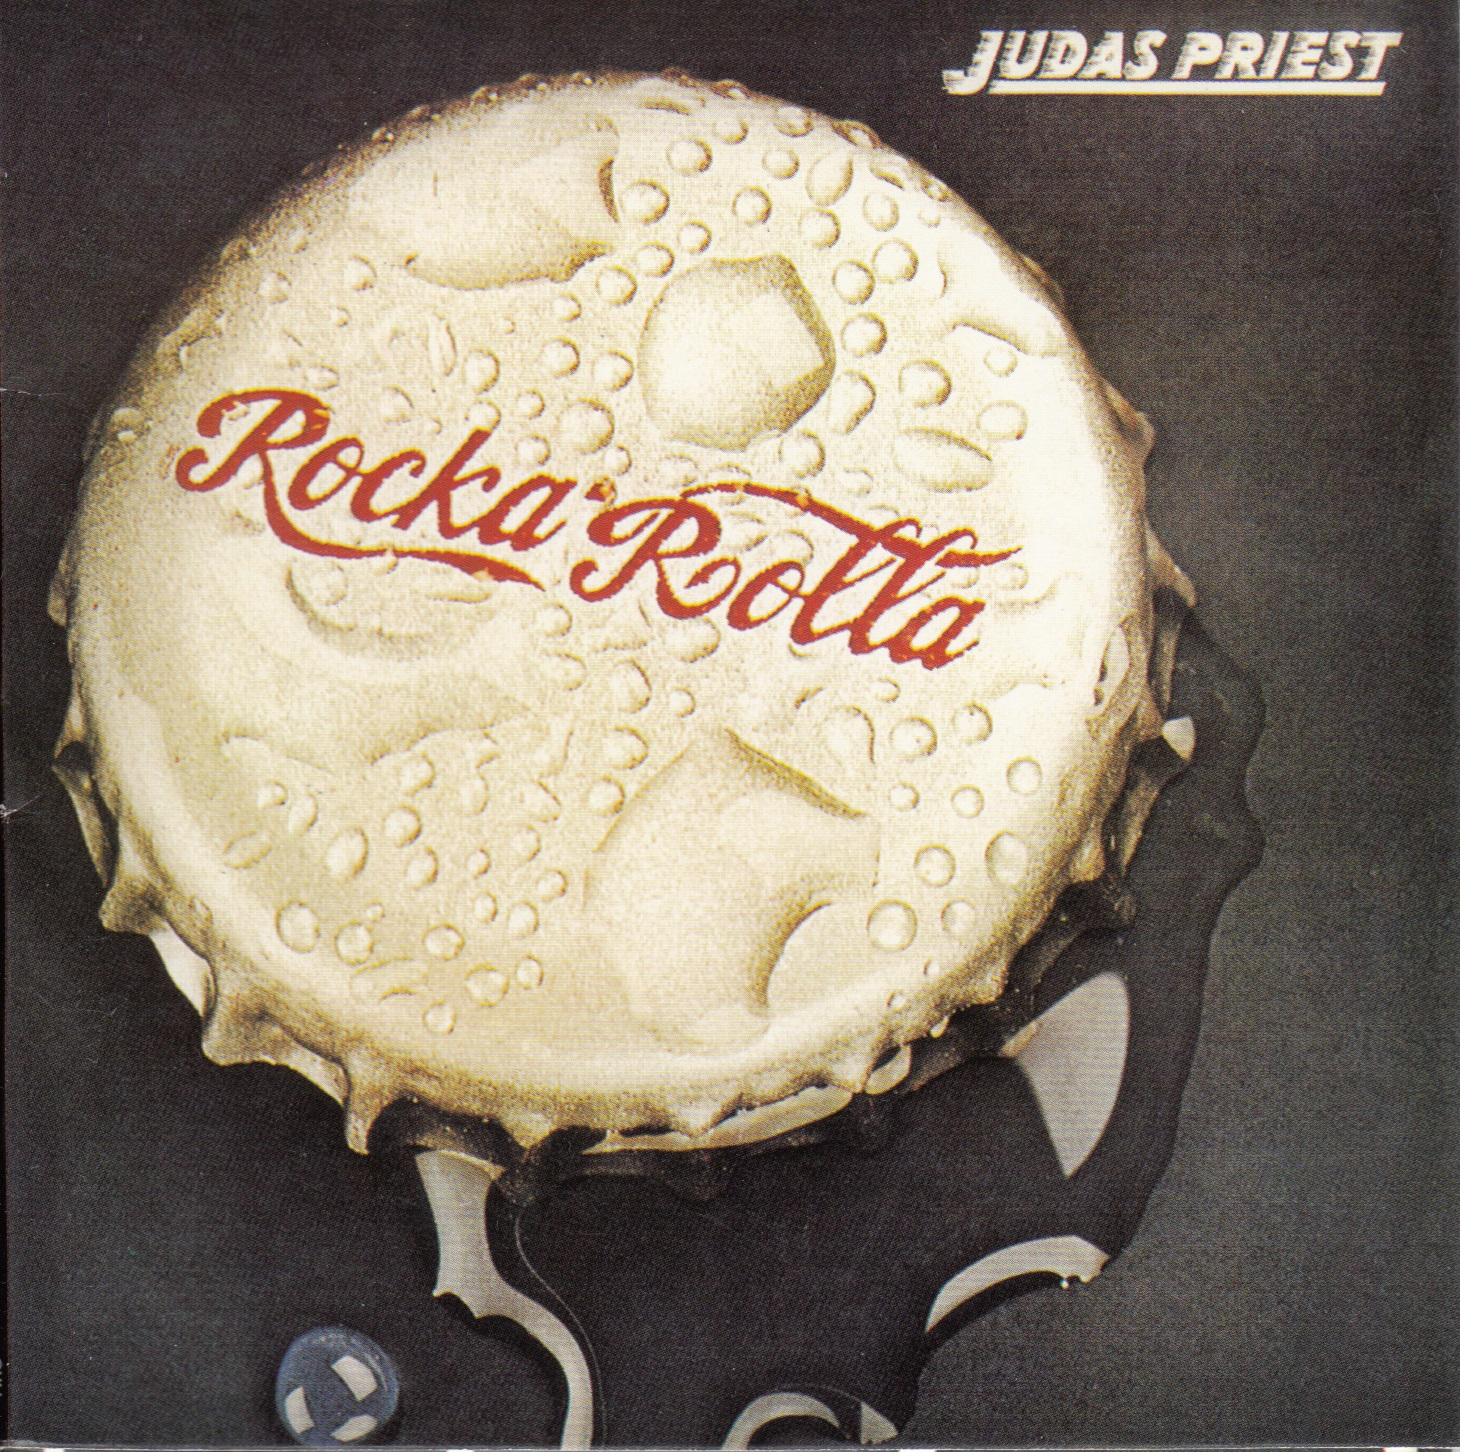 Judas Priest — Rocka Rolla (1974)